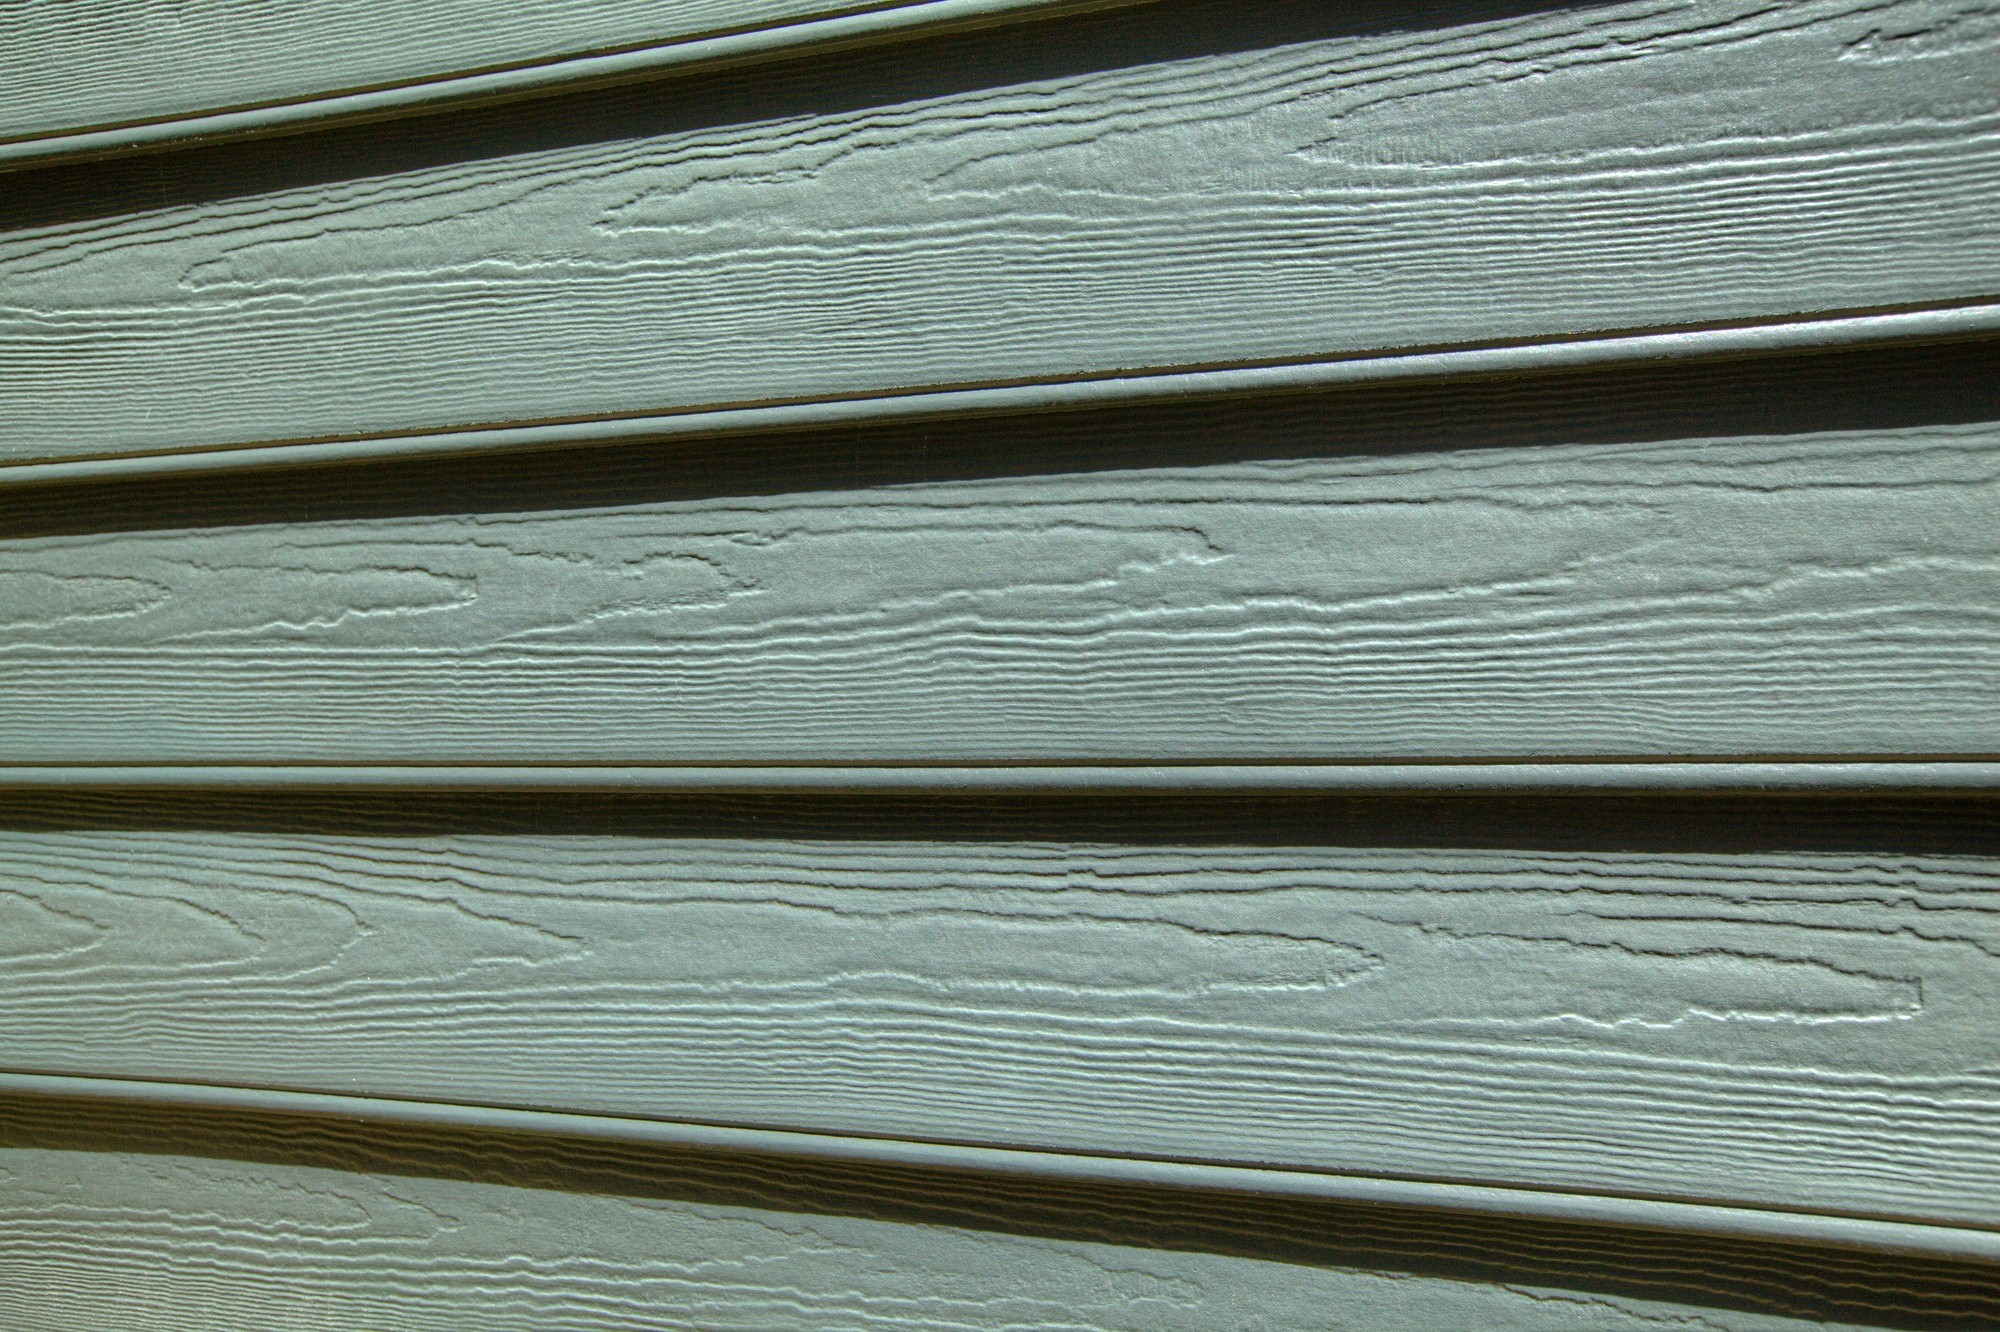 textured hardie plank siding in white for home exterior design ideas